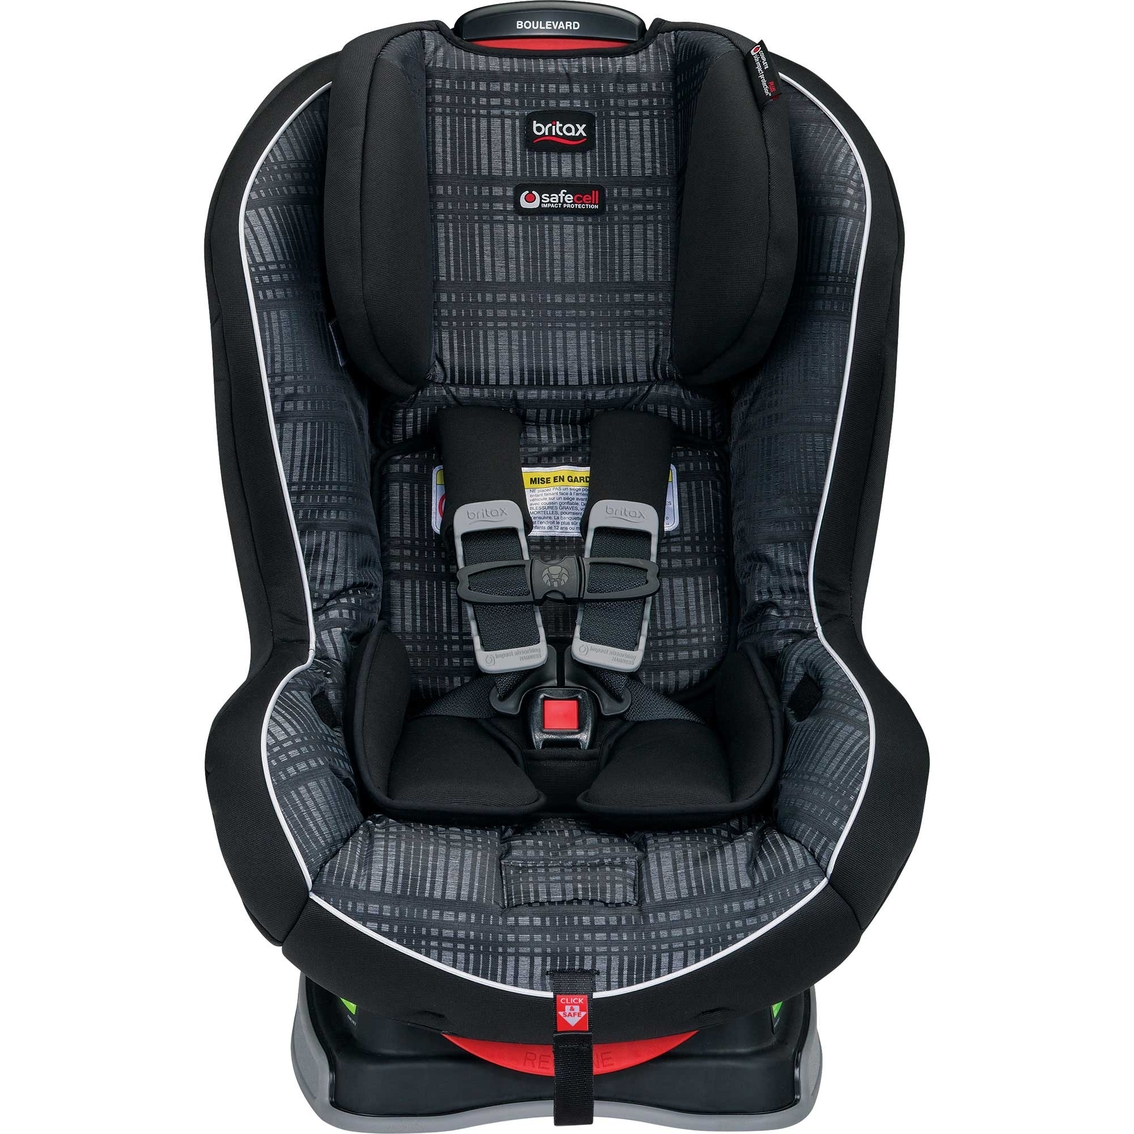 britax boulevard convertible car seat baby clearance shop the exchange. Black Bedroom Furniture Sets. Home Design Ideas